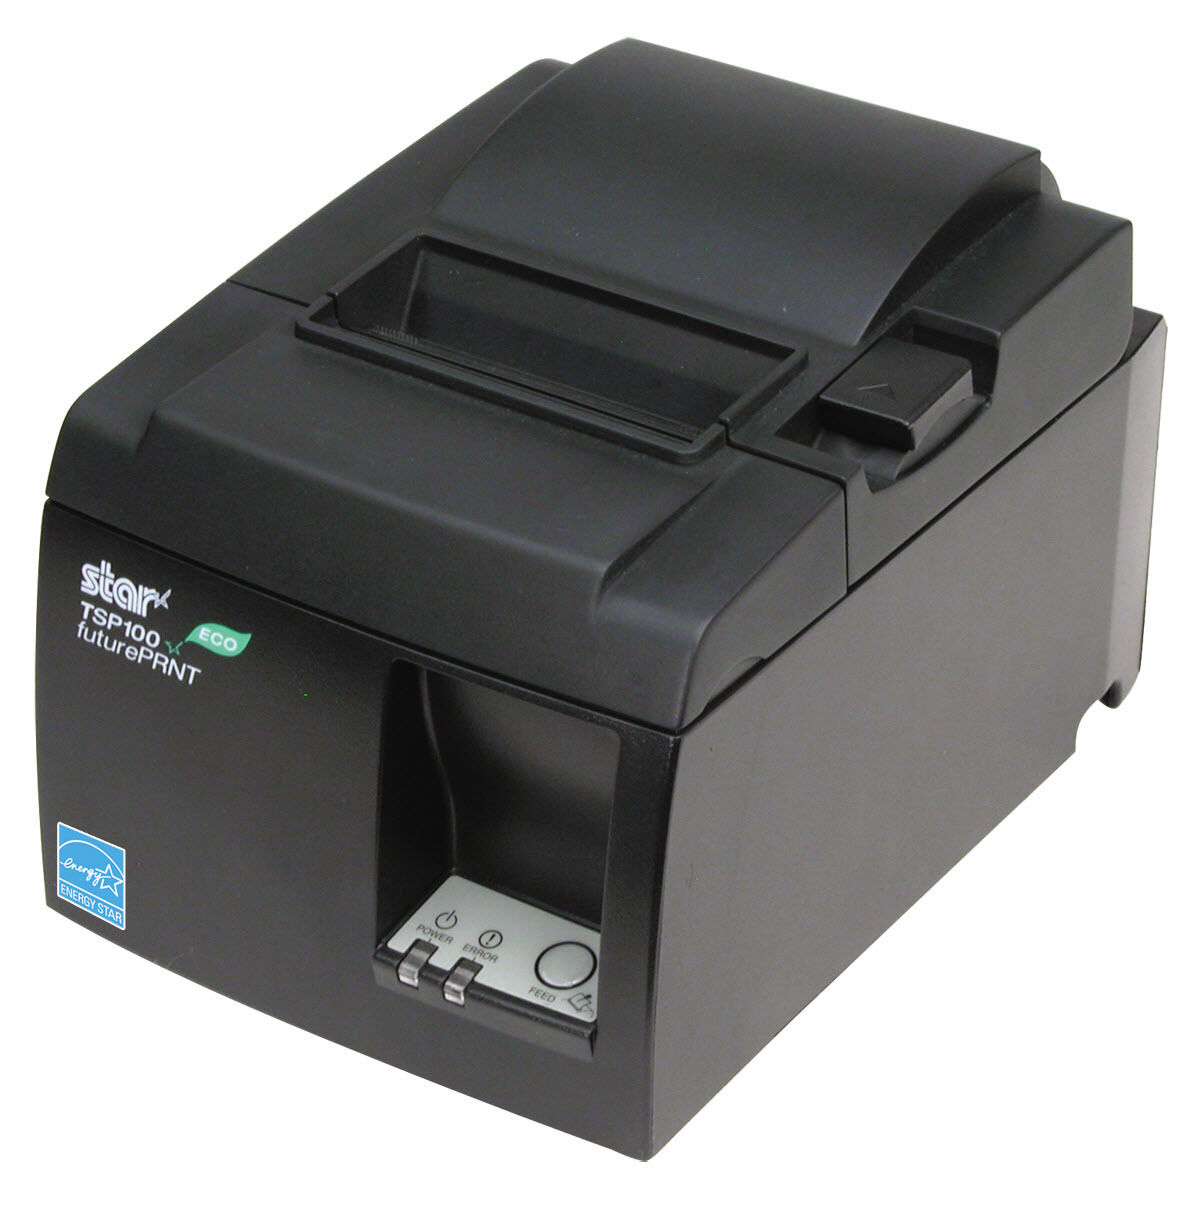 Square Register Stand Certified   Printer  14in Cash Drawer Bundle  NEW